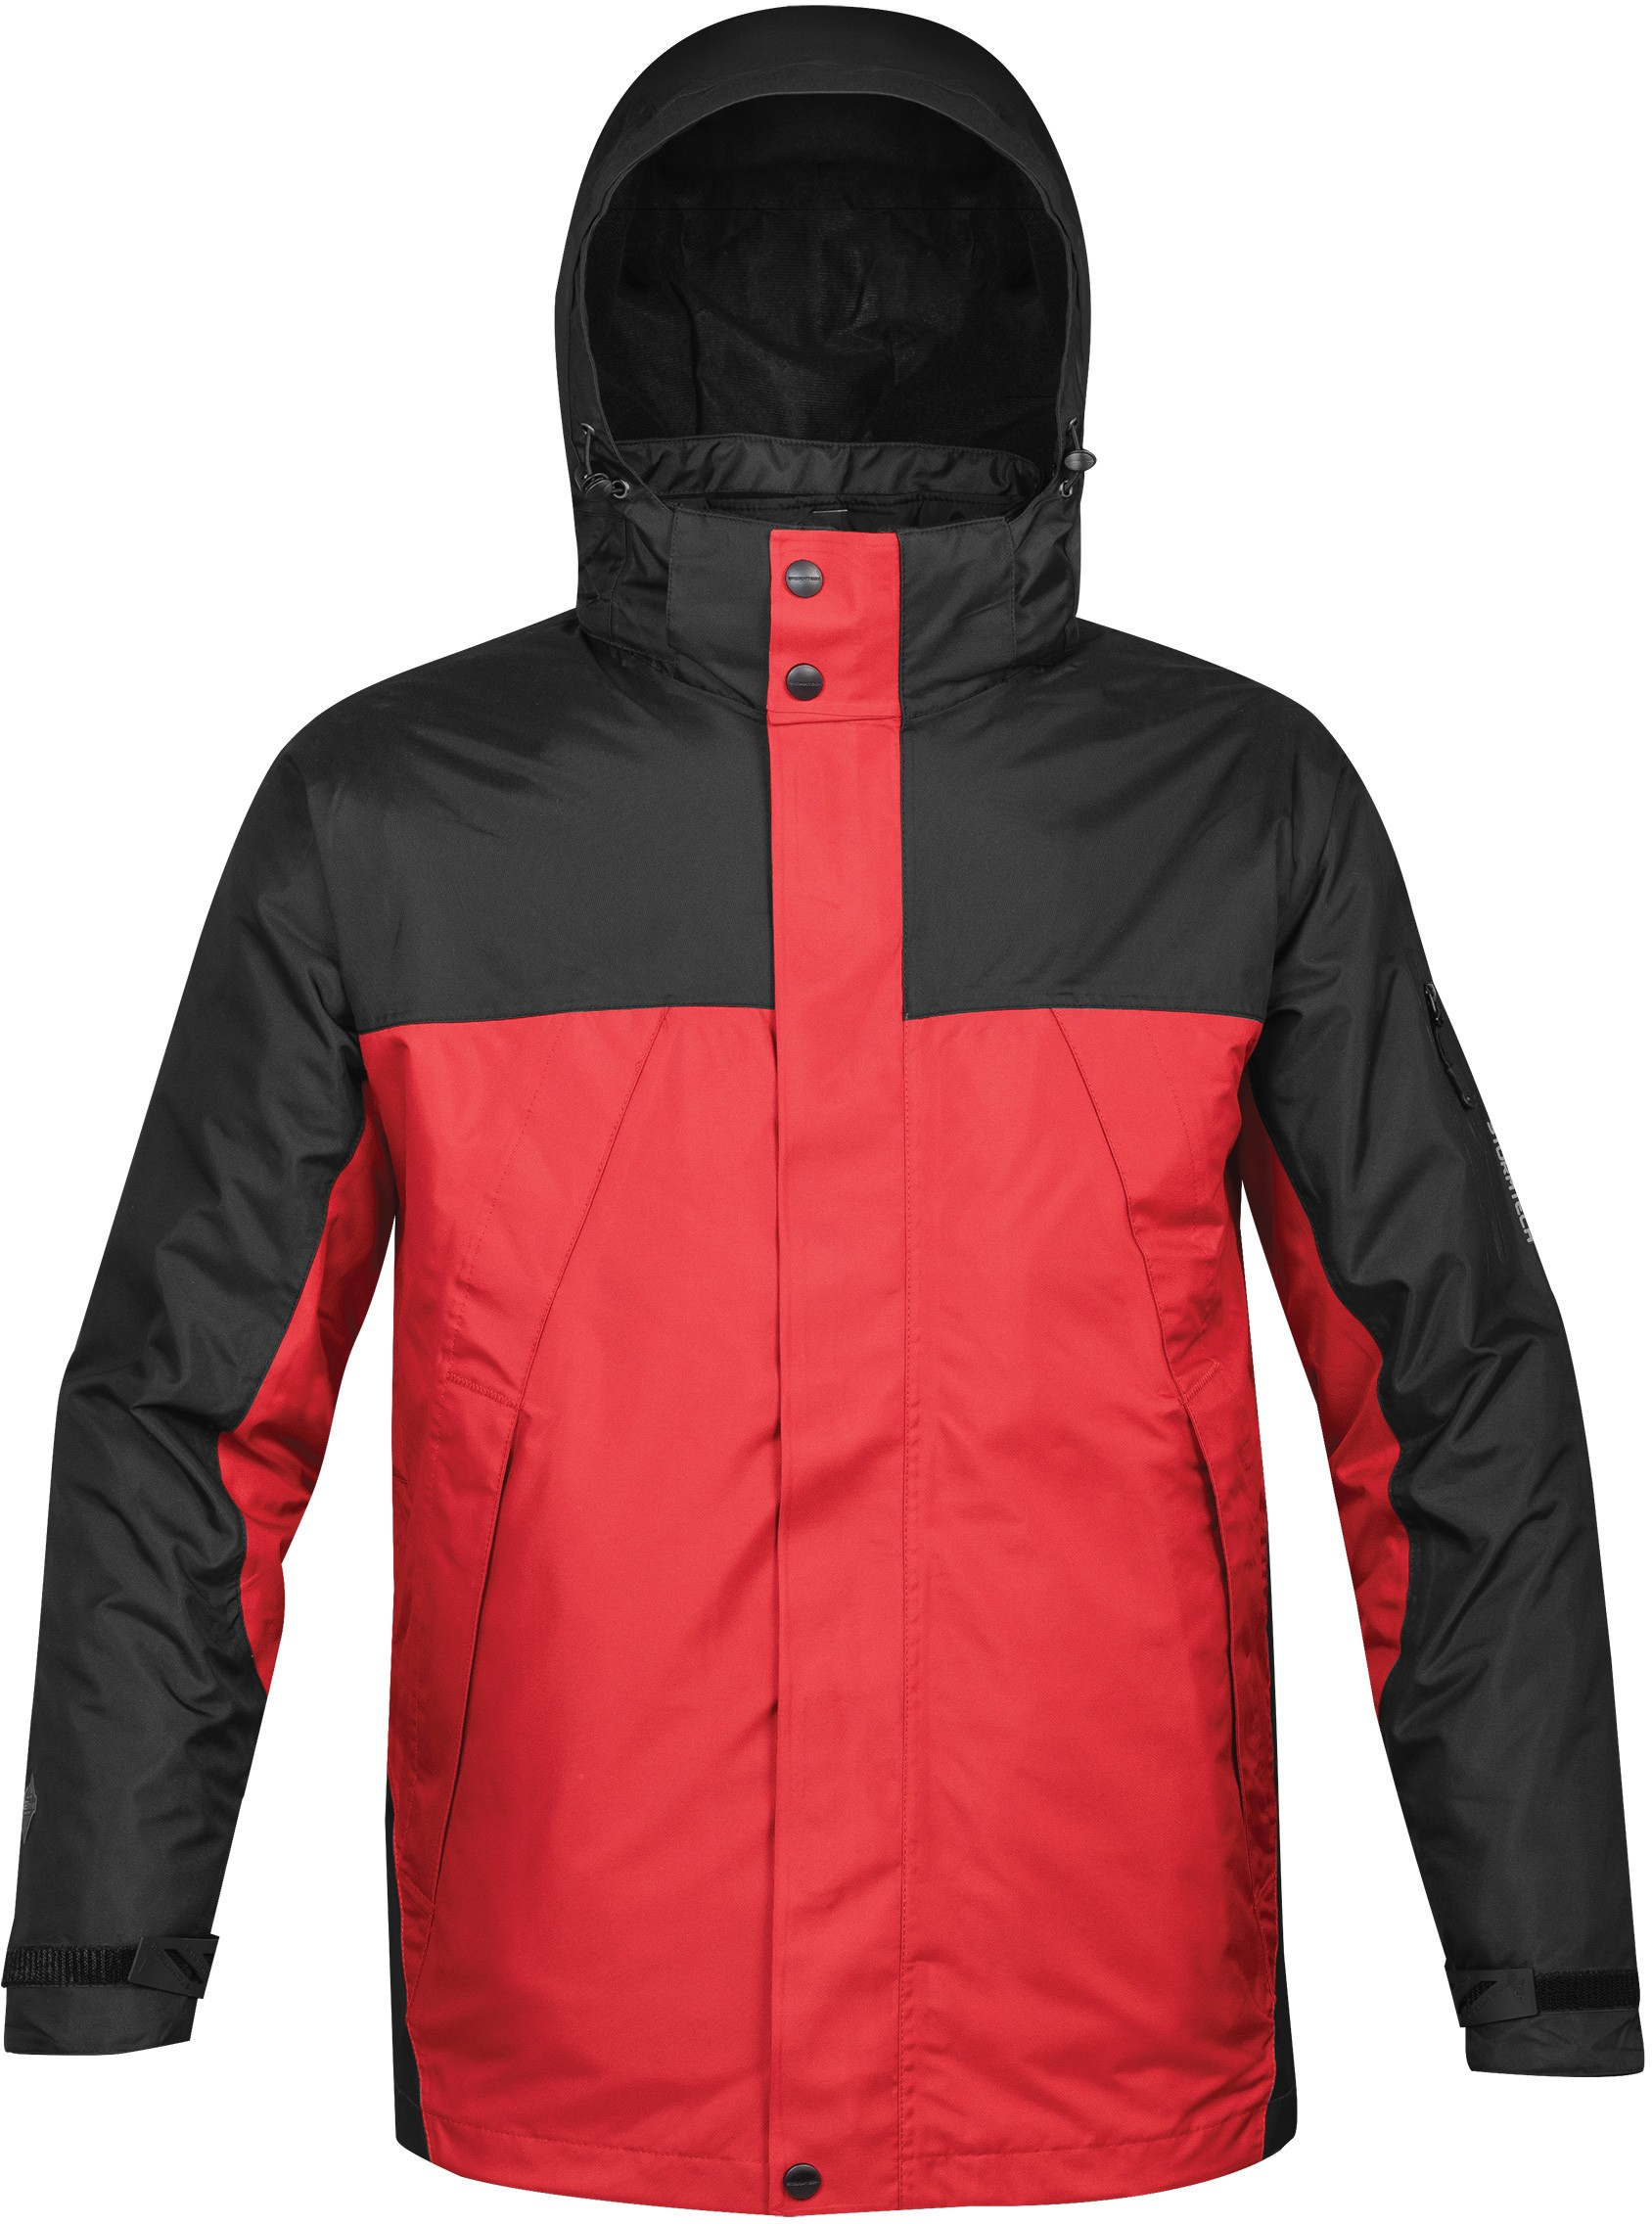 stormtech vpx jacket wear clothing jackets apparel performance accessories system outerwear fusion technical colours winter